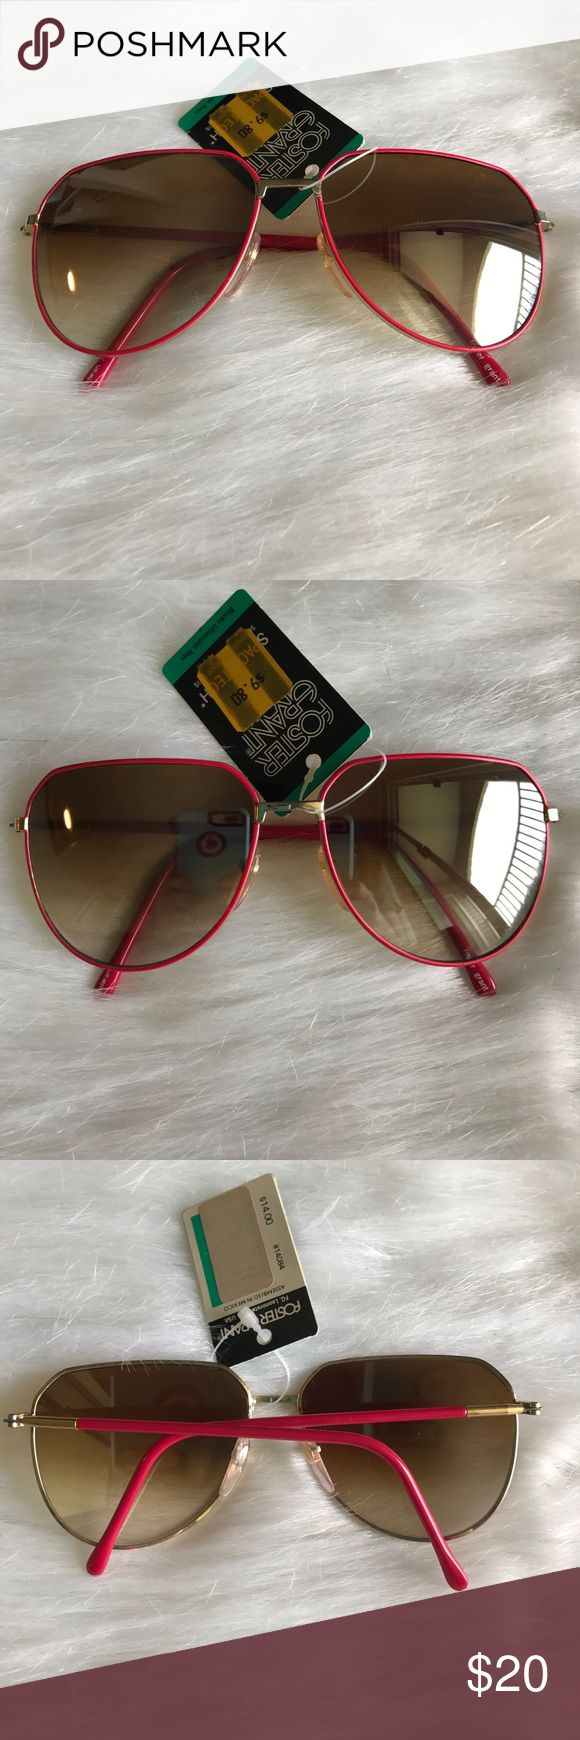 Vintage Deadstock Sunglasses 🕶 Vintage Deadstock Foster Grant sunglasses. Red framed aviators. Excellent condition. Smoke Free Home 🏡 Foster Grant Accessories Sunglasses